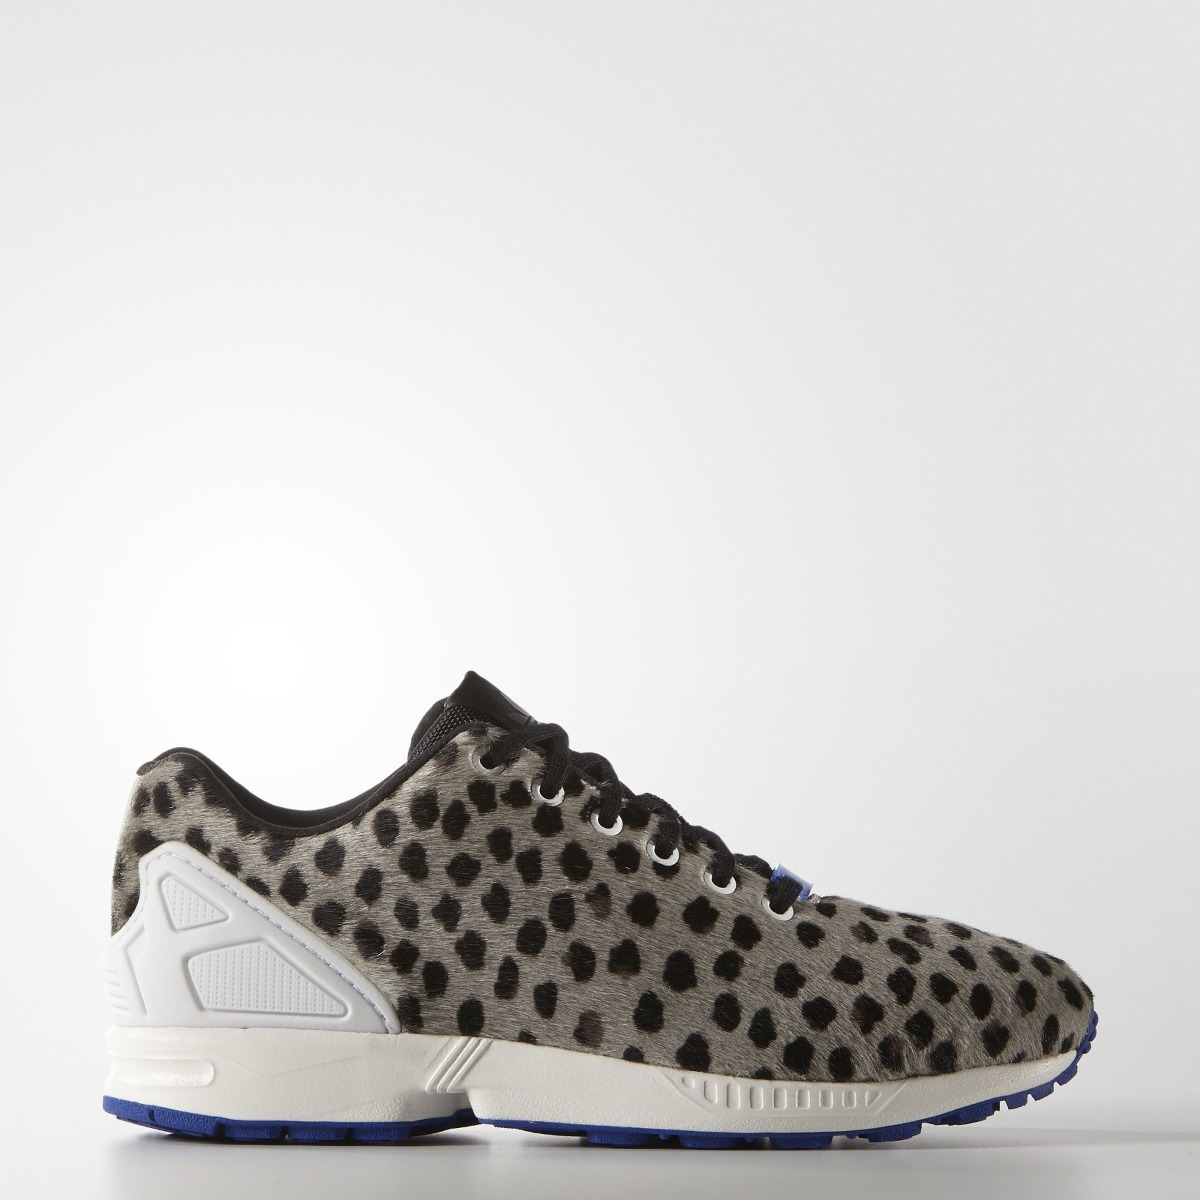 the best attitude 7ae08 820dd tenis zx flux originals adidas, envió gratis!! Cargando zoom.